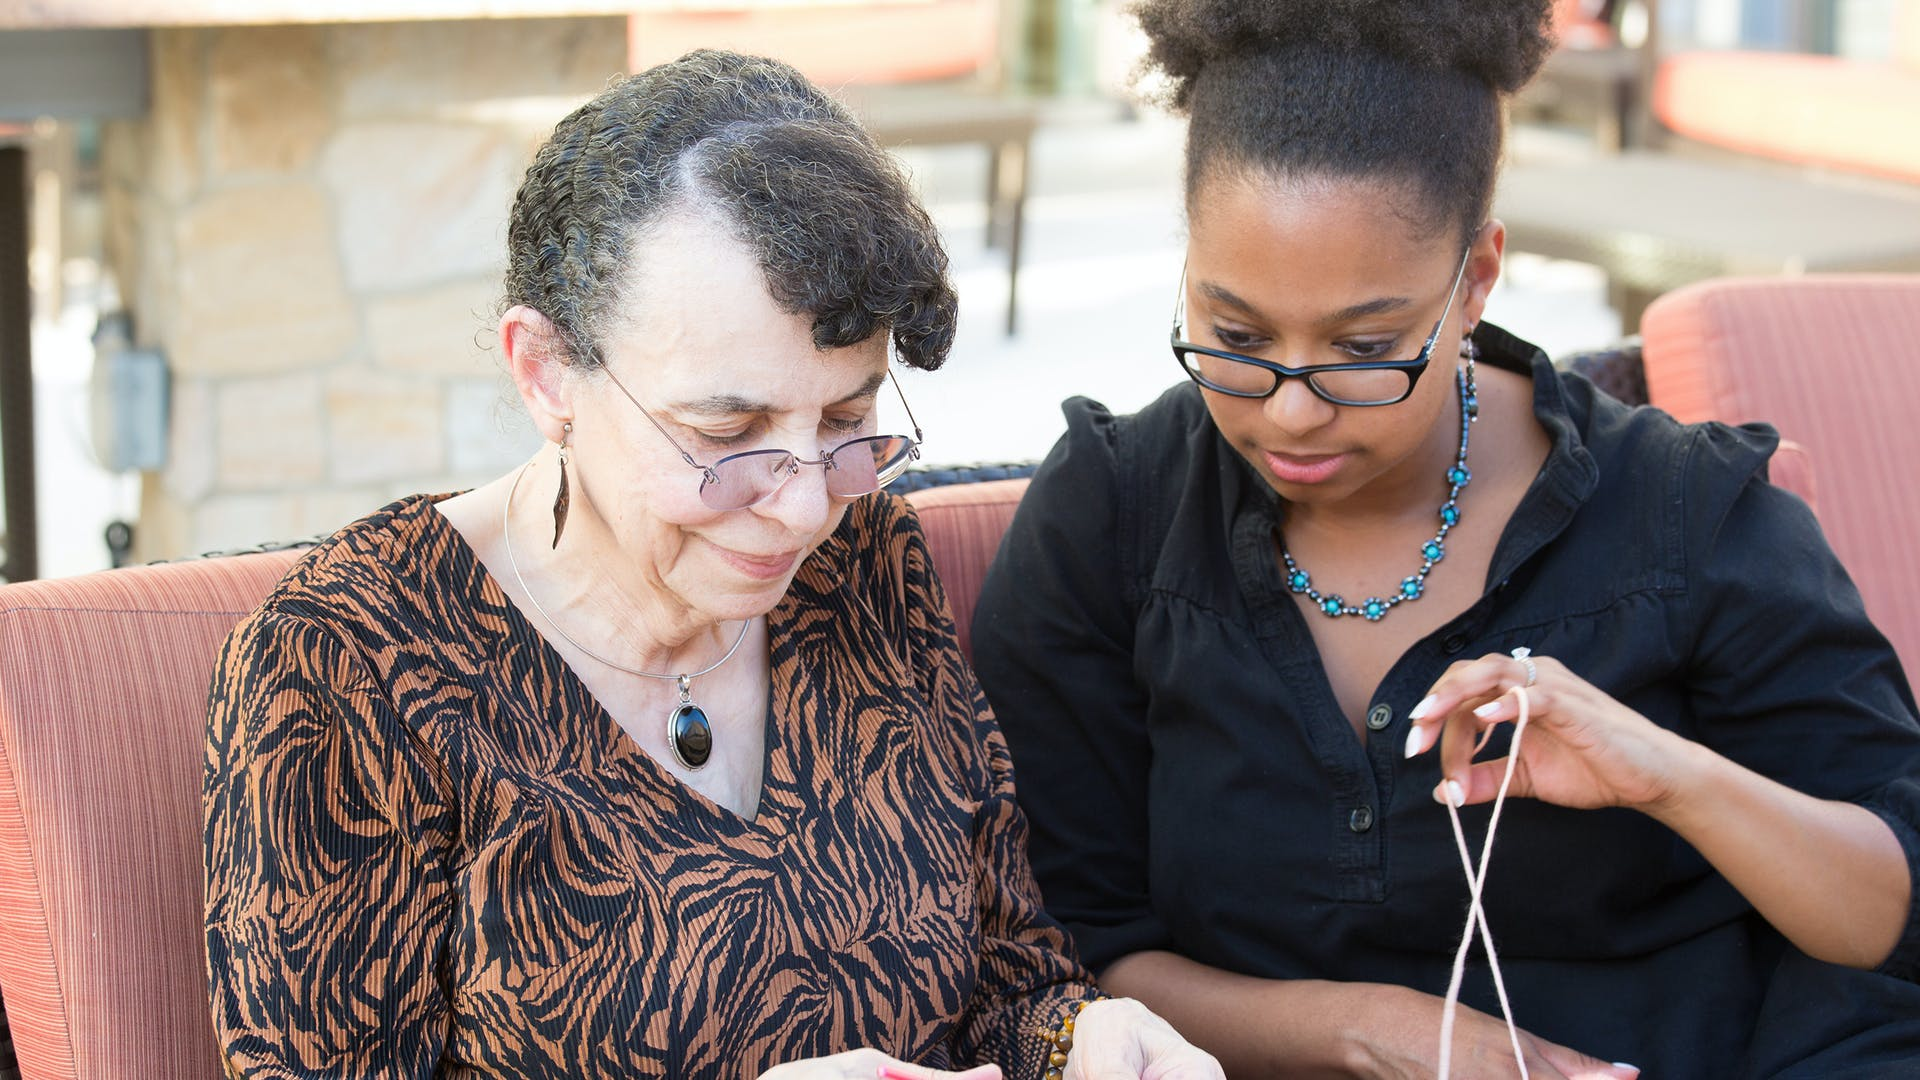 Elderly lady knitting being supported by her carer